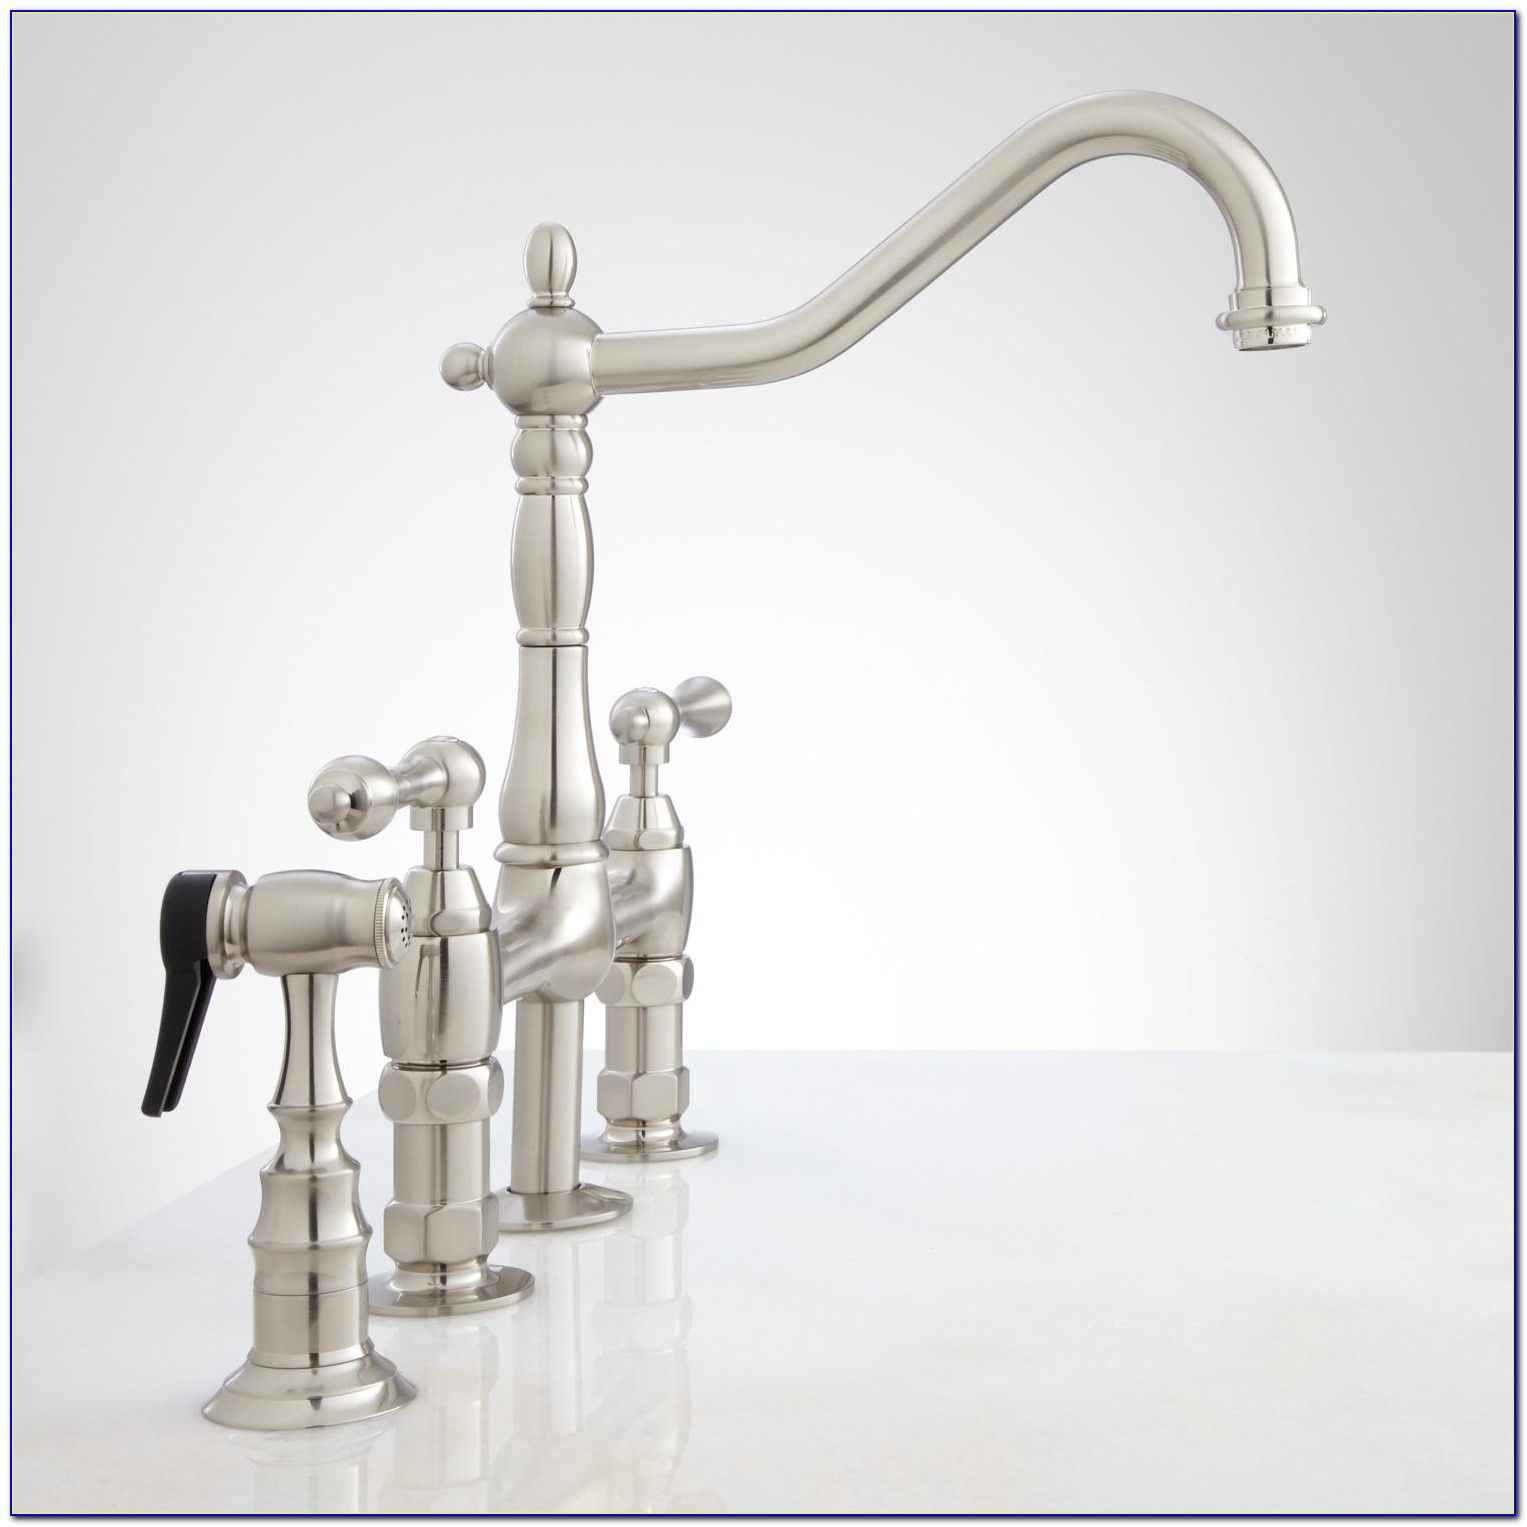 Delta Bridge Style Kitchen Faucet Delta Bridge Style Kitchen Faucet Bellevue Bridge Kitchen Faucet With Brass Sprayer Lever Handles 1500 X 1500